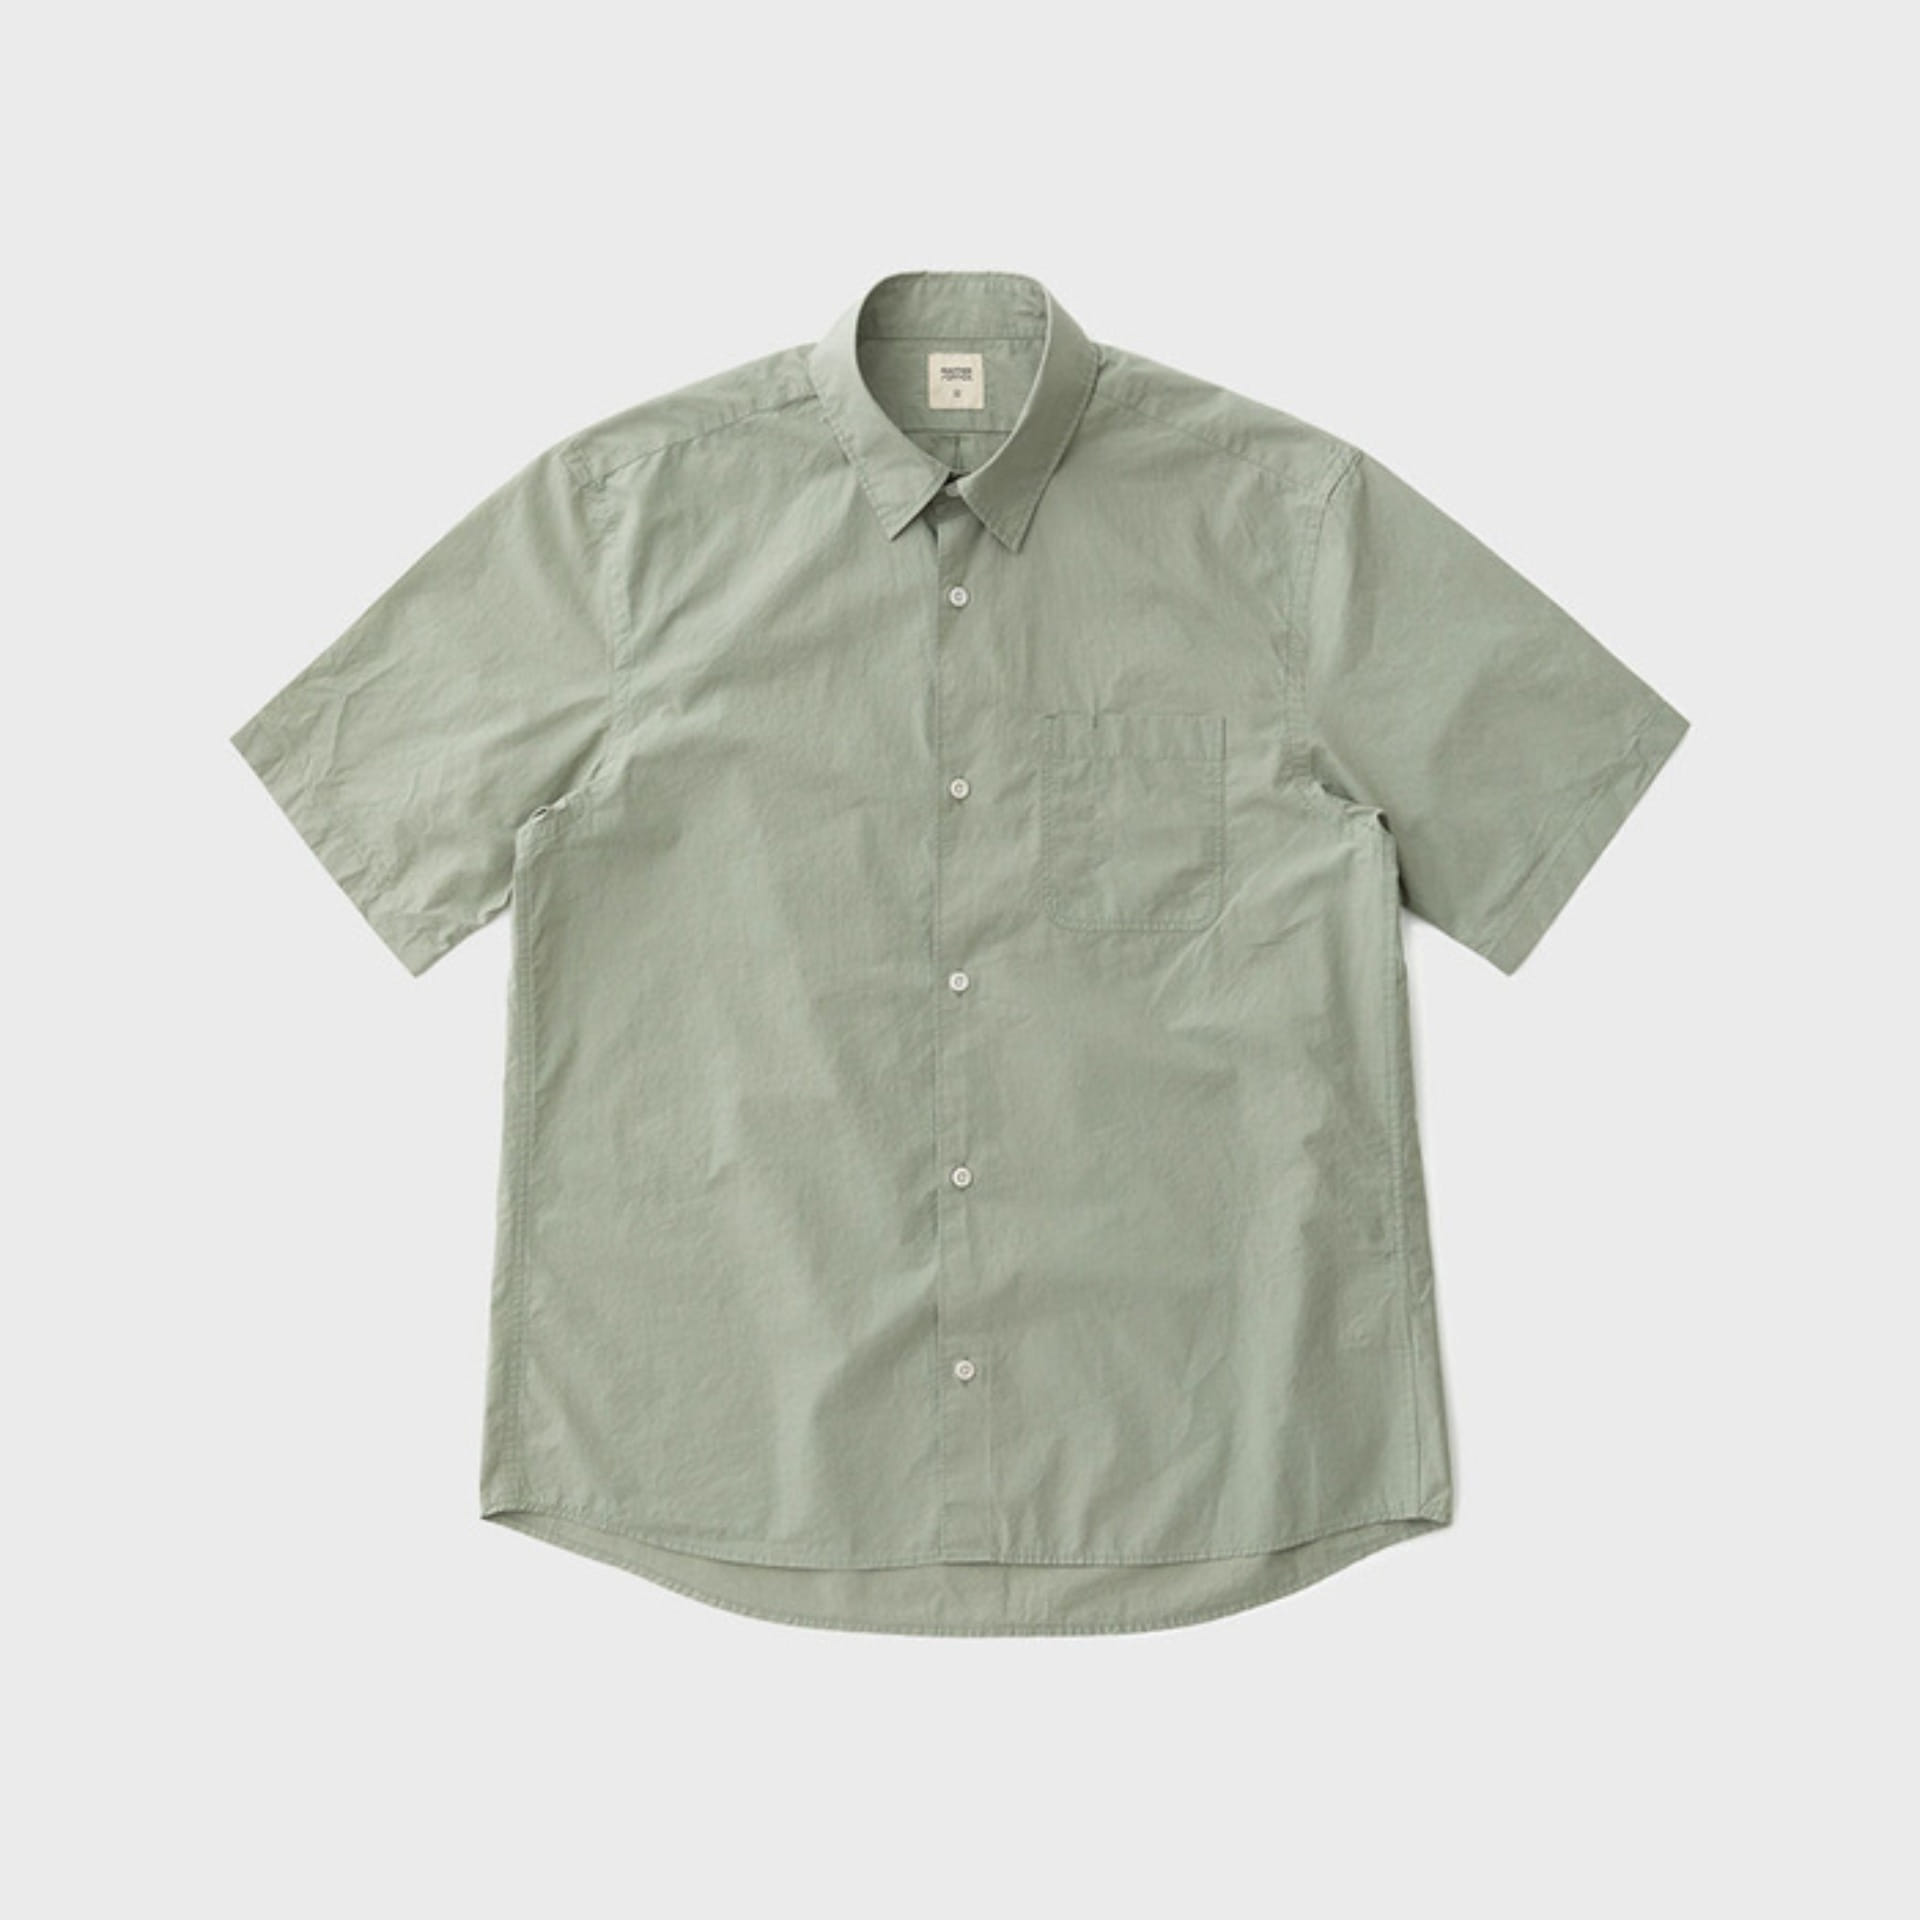 Dailylife Shirt (Smoky Olive)